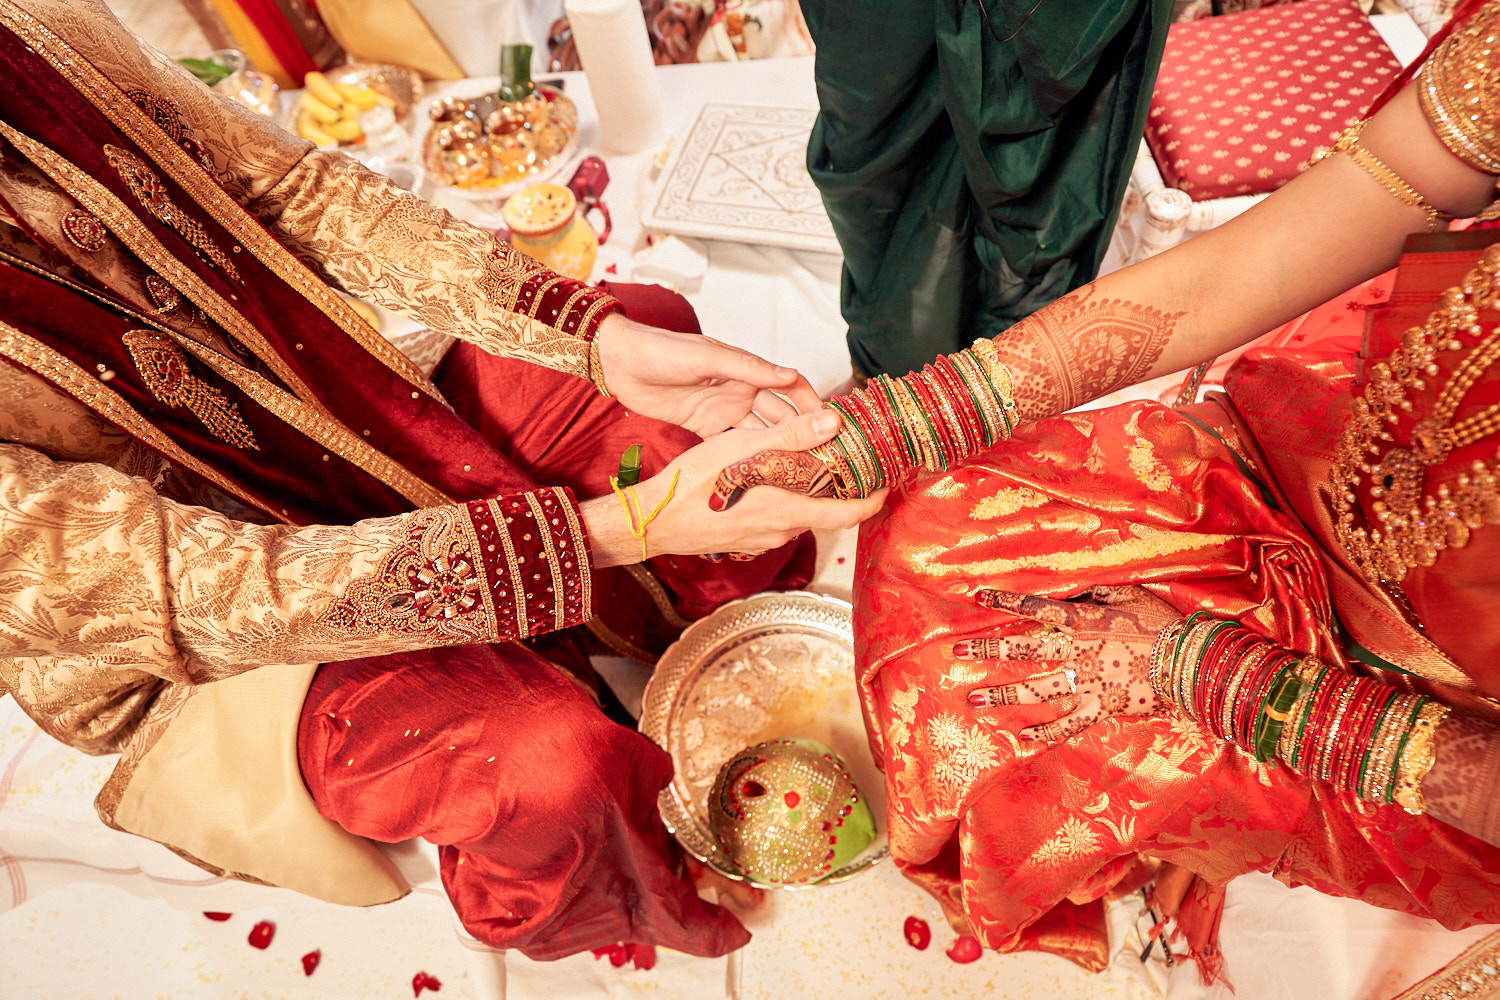 south-indian-wedding-ceremony-photography-by-afewgoodclicks-net-in-saratoga 141.jpg